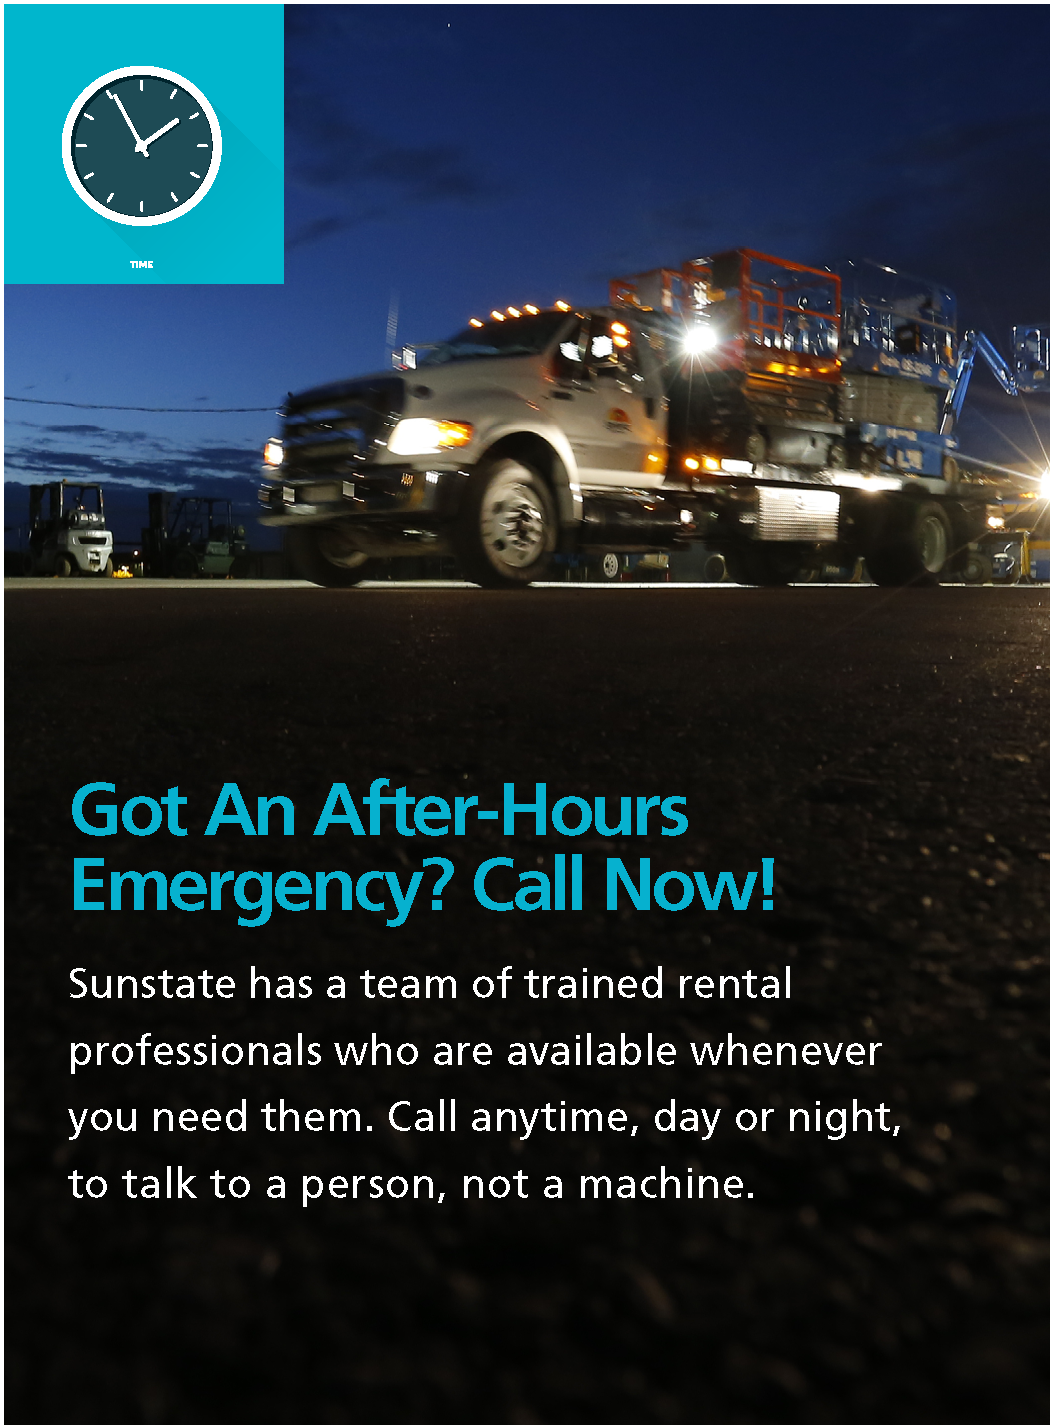 Sunstate Equipment 24-hour service support